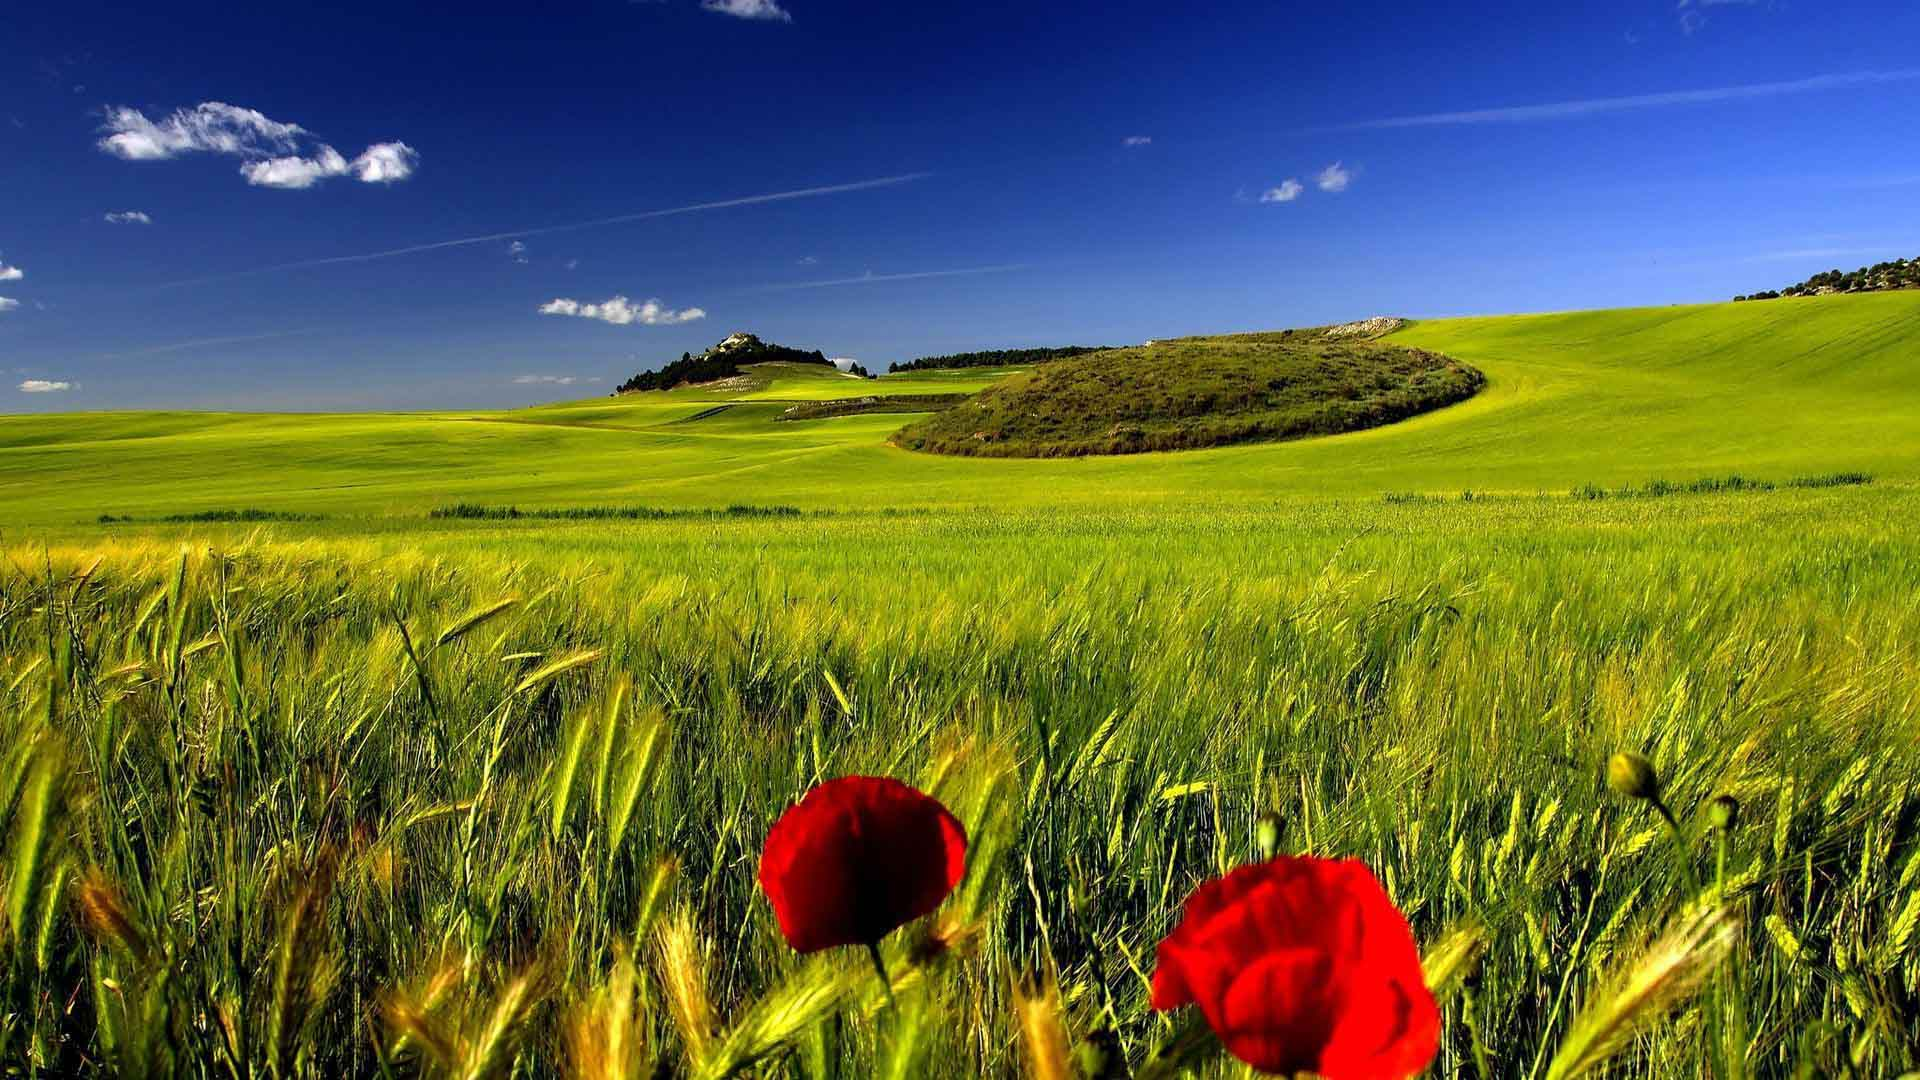 ... Landscape Poppies In The Green Wheat Field Wallpaper 1920×1080